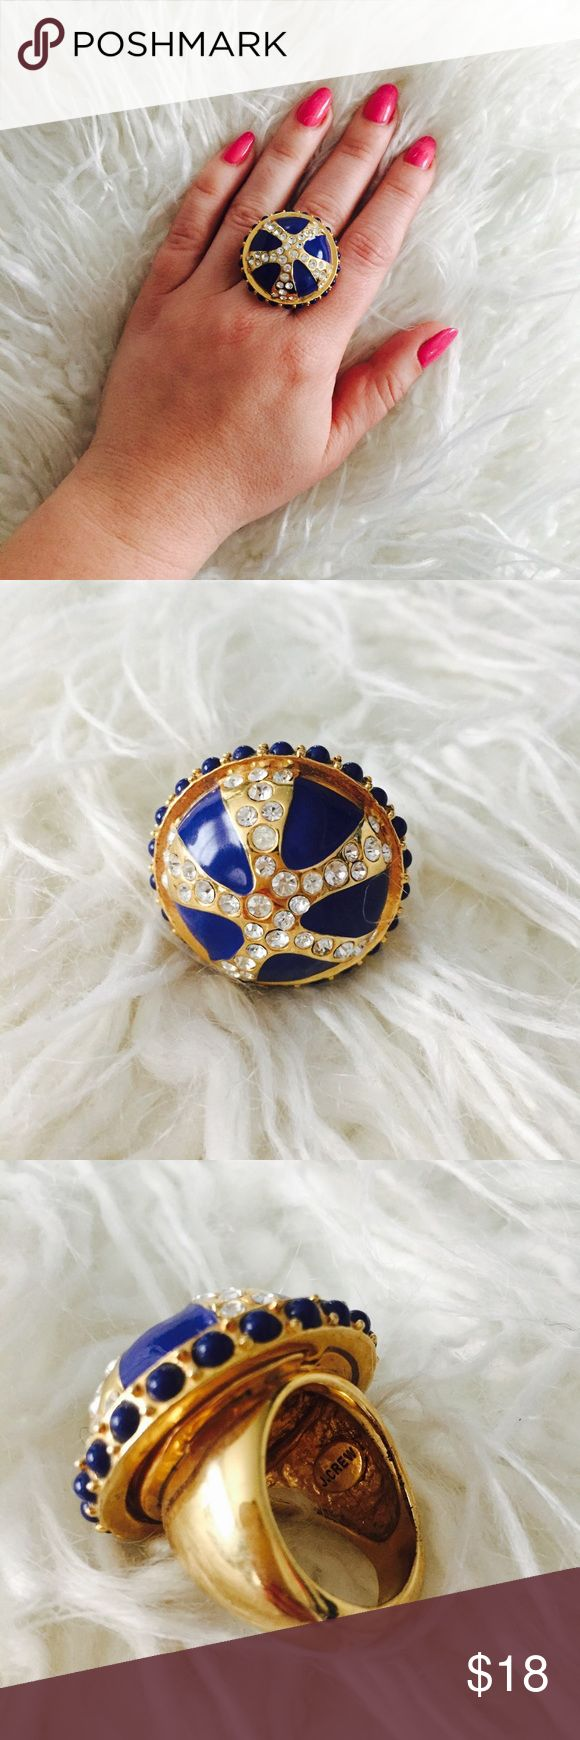 J. Crew Enamel and Rhinestone Ring This ring is a show stopper. Gold with blue enamel and rhinestone details. One size. I have fairly small hands and this fits great on my middle finger and would fit great on the ring finger for those with larger hands. The top of the ring measures 1.5 inches in diameter. There are a couple very small spots of tarnishing on the interior of the band (pic 3) but ring is otherwise in great condition with all rhinestones intact. J. Crew Jewelry Rings